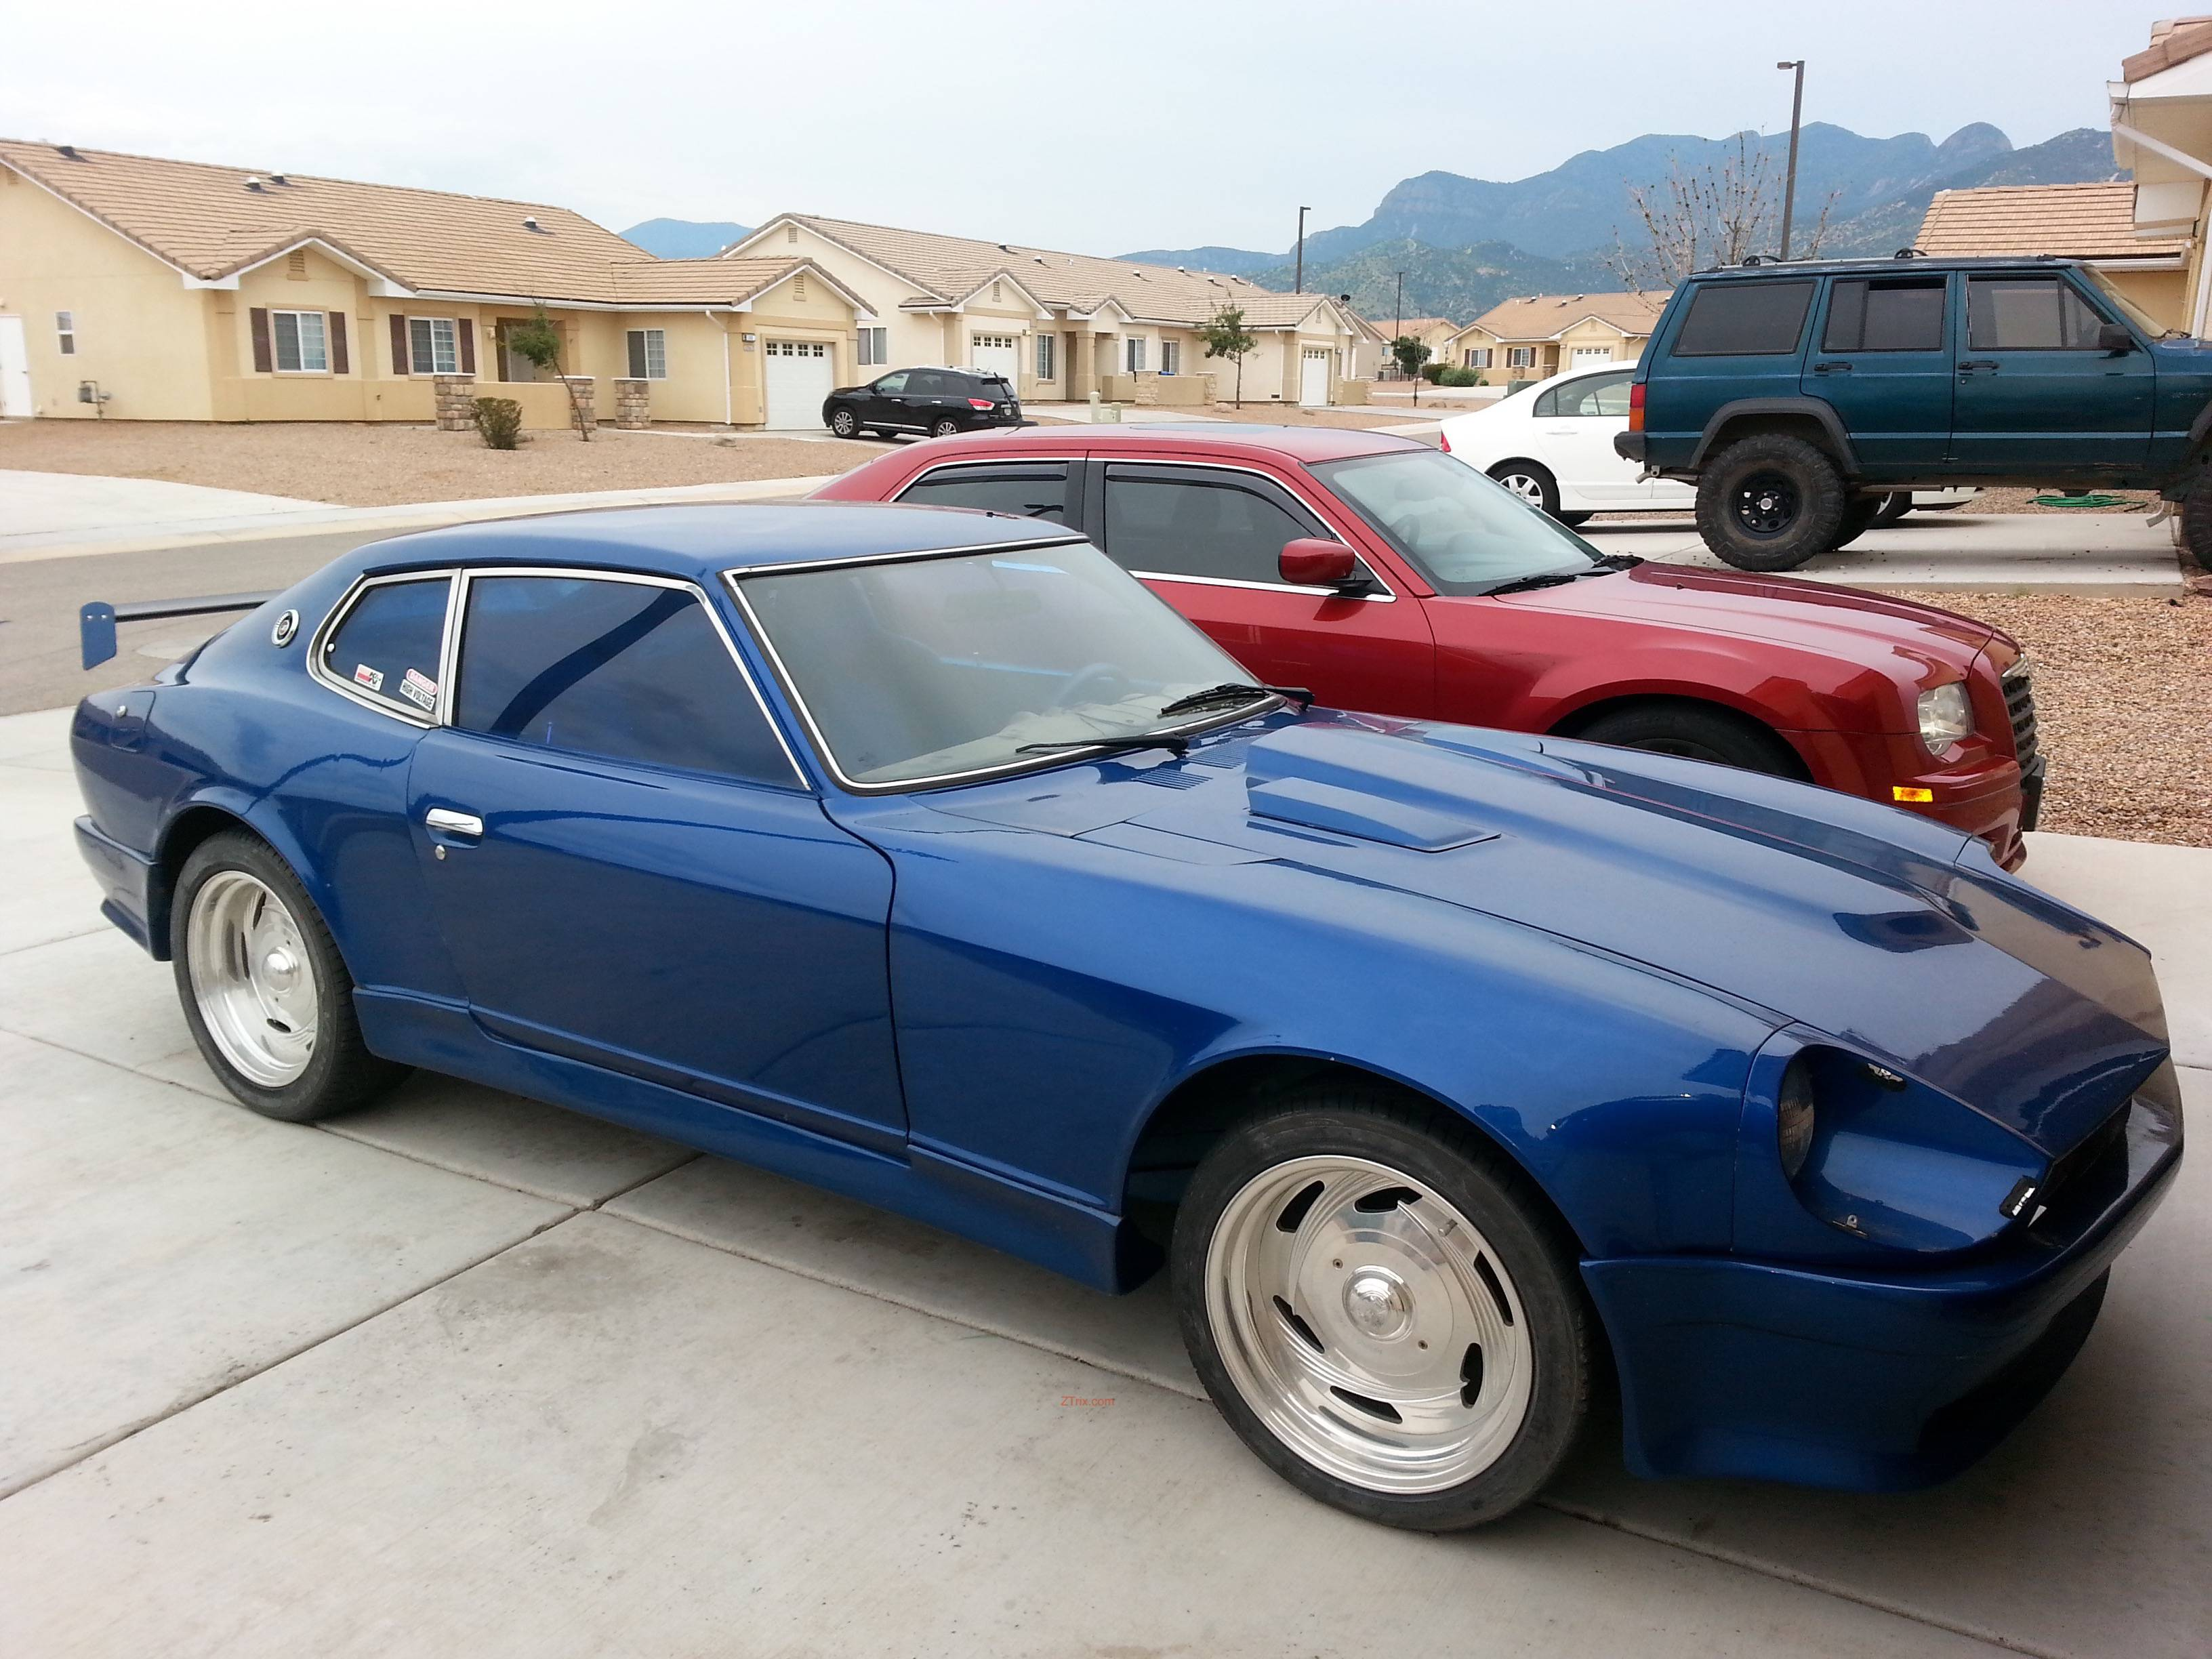 SOLD 1976 280z 2+2 with SubtleZ widebody kit and more | Classifieds ...